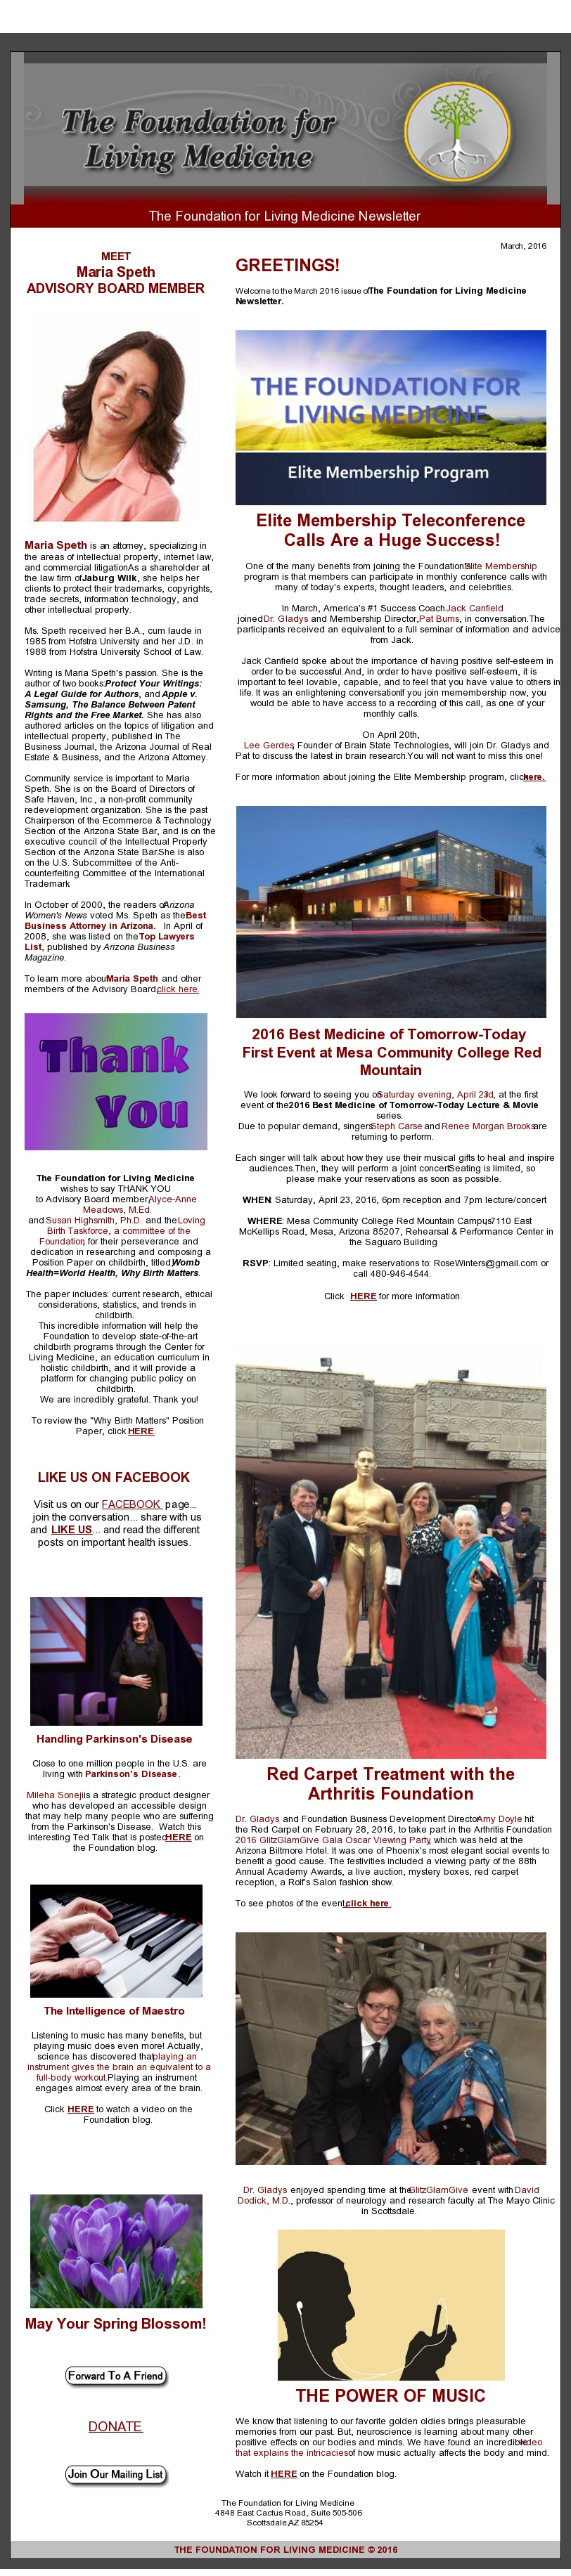 flm_newsletter_March_2016.jpg